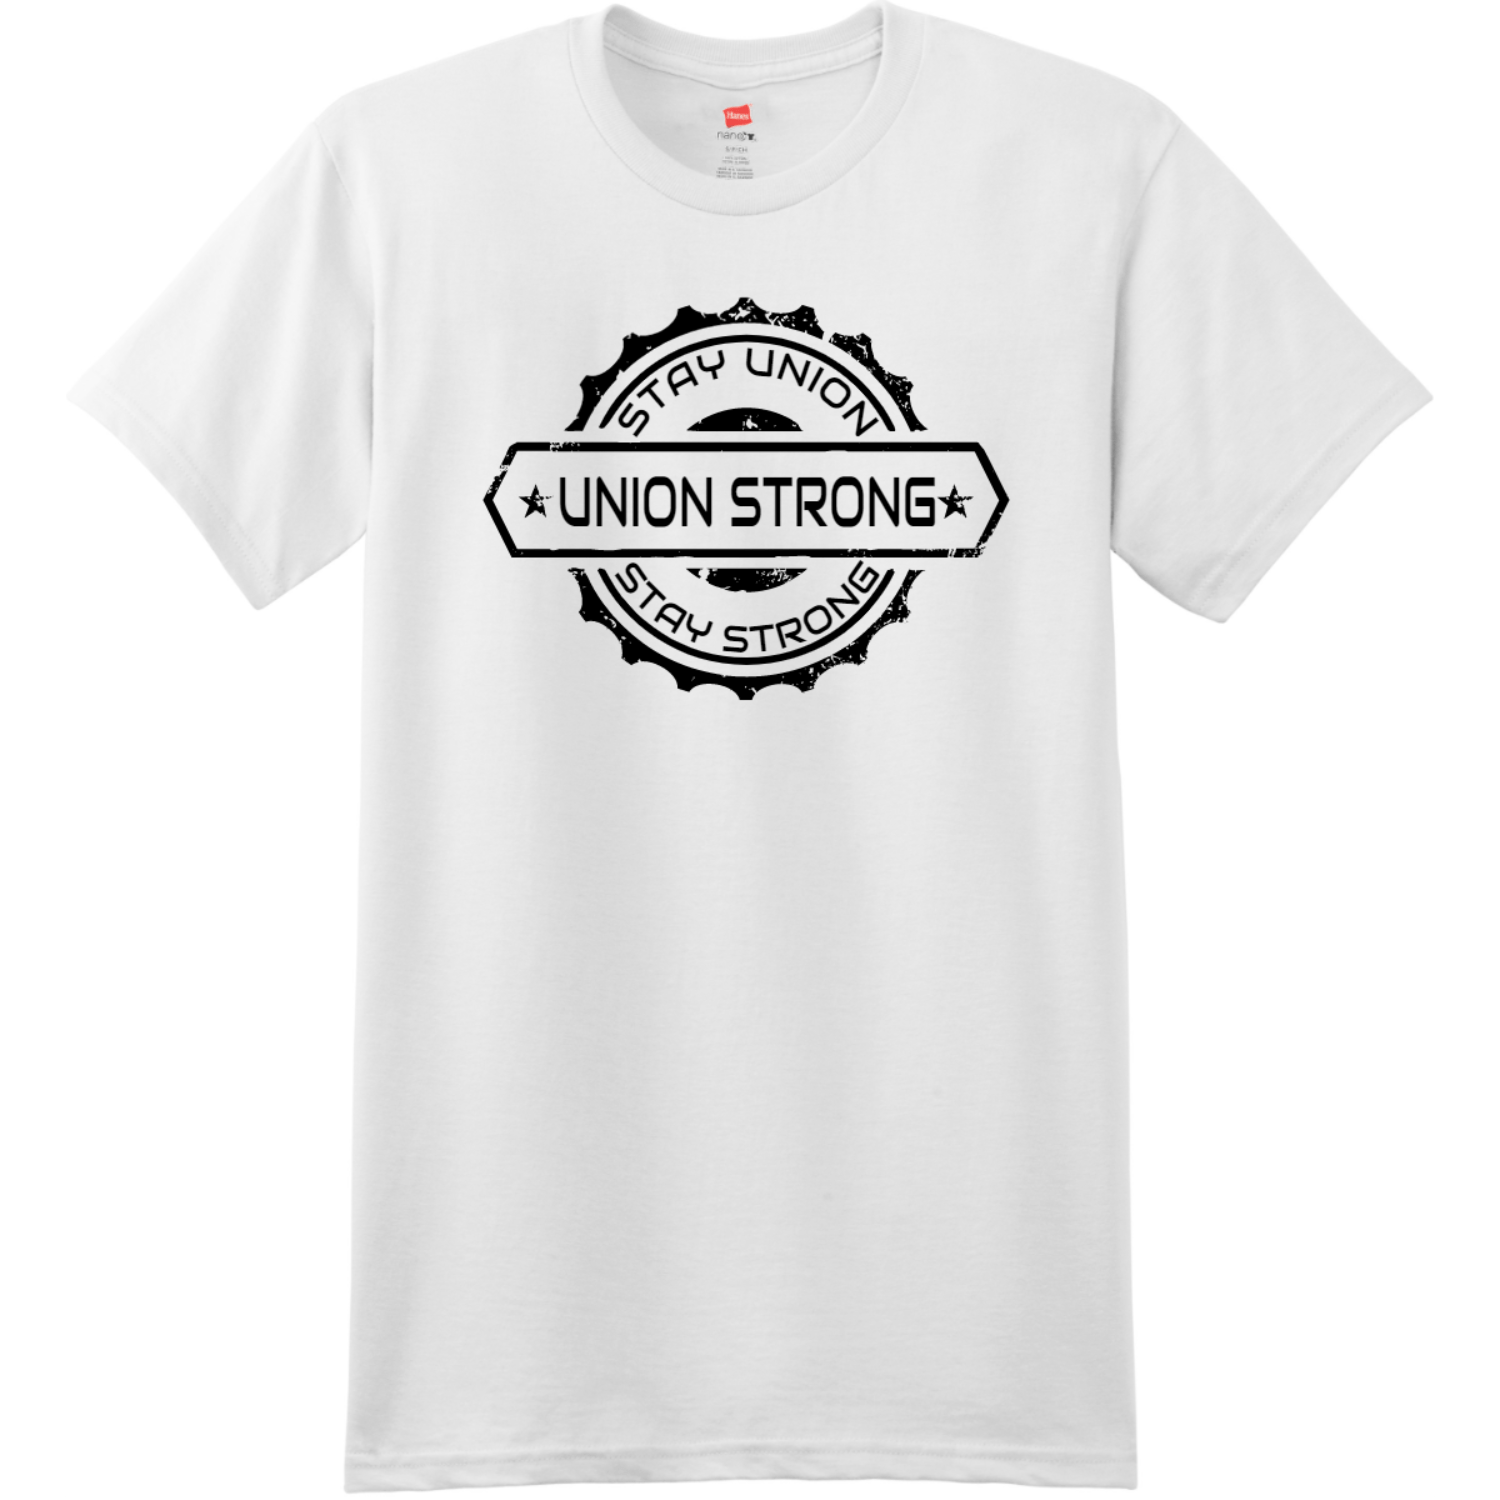 Stay Union Stay Strong T Shirt White Hanes Nano 4980 Ringspun Cotton T Shirt